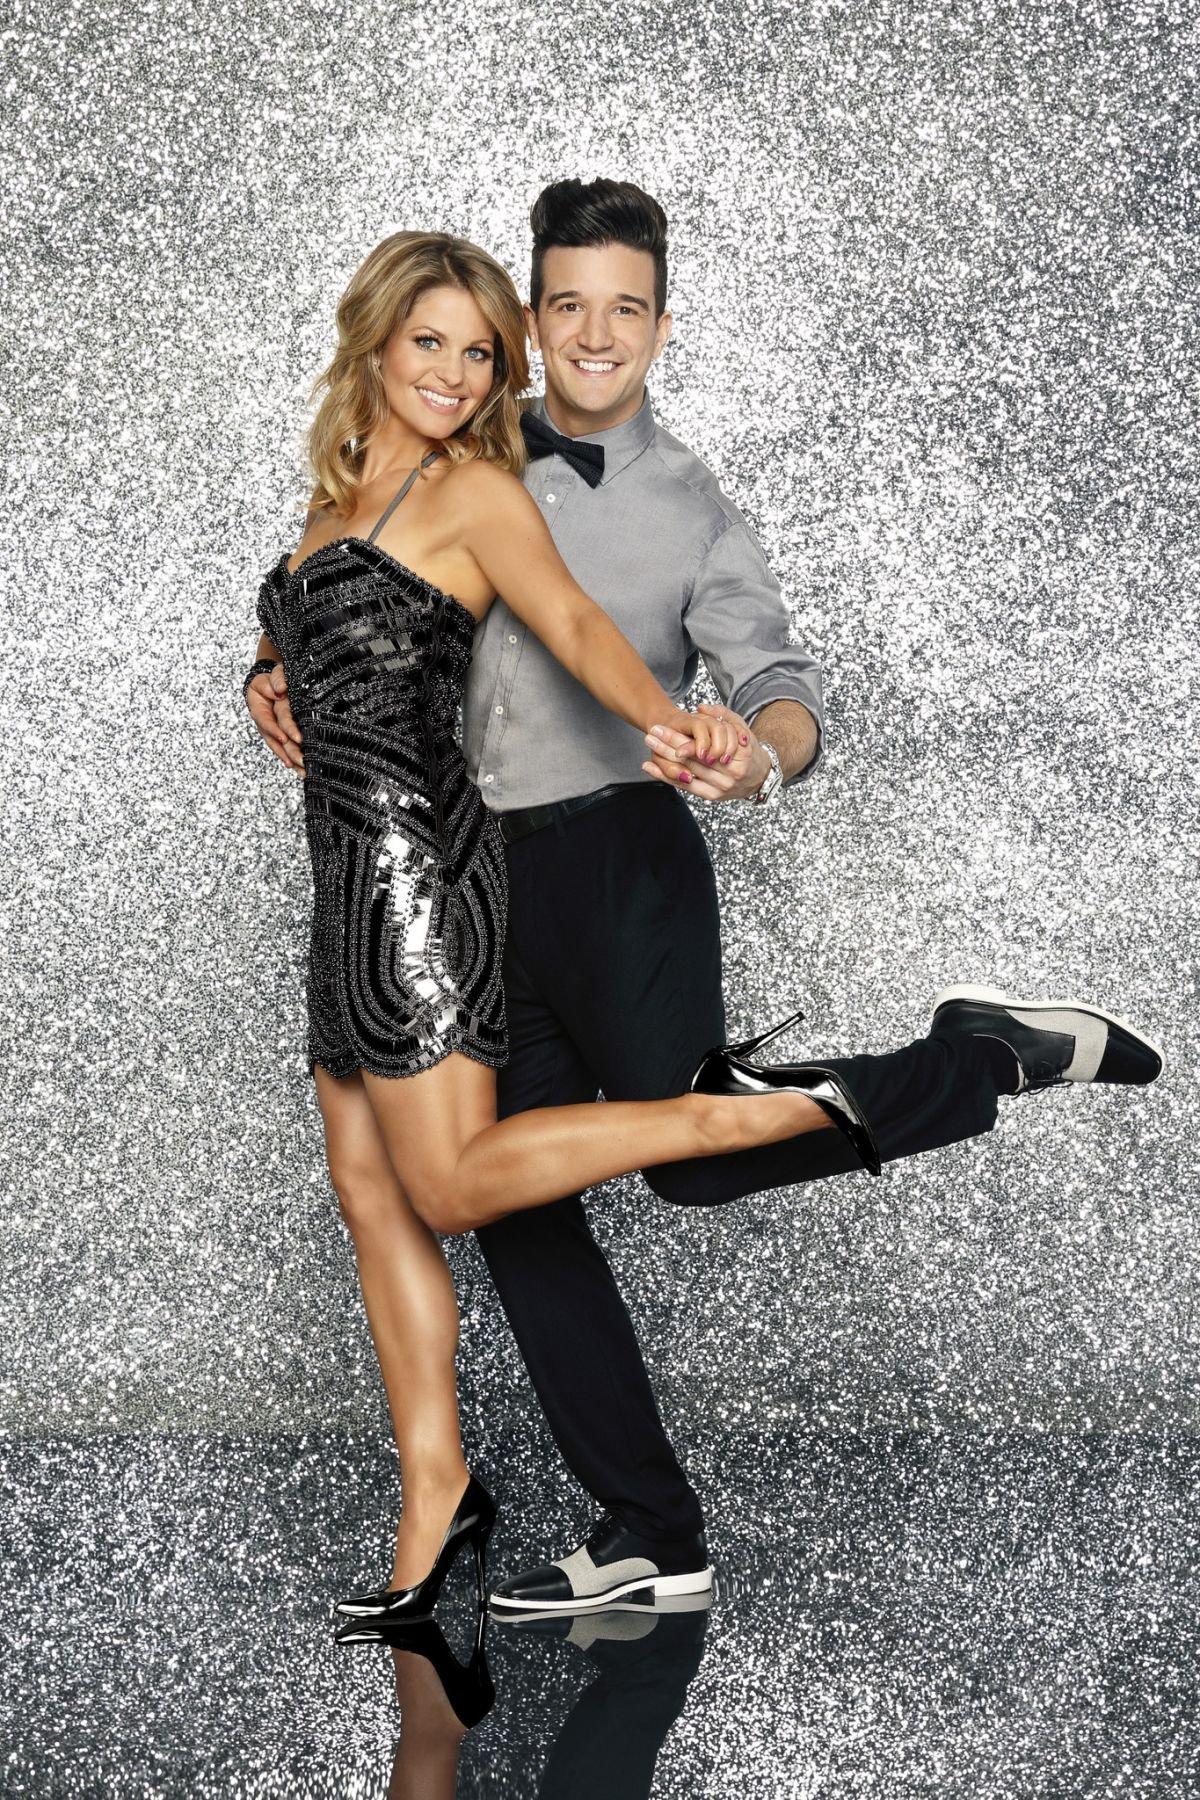 CANDACE CAMERON BURE - Dancing with the Stars - Season 18 Promo